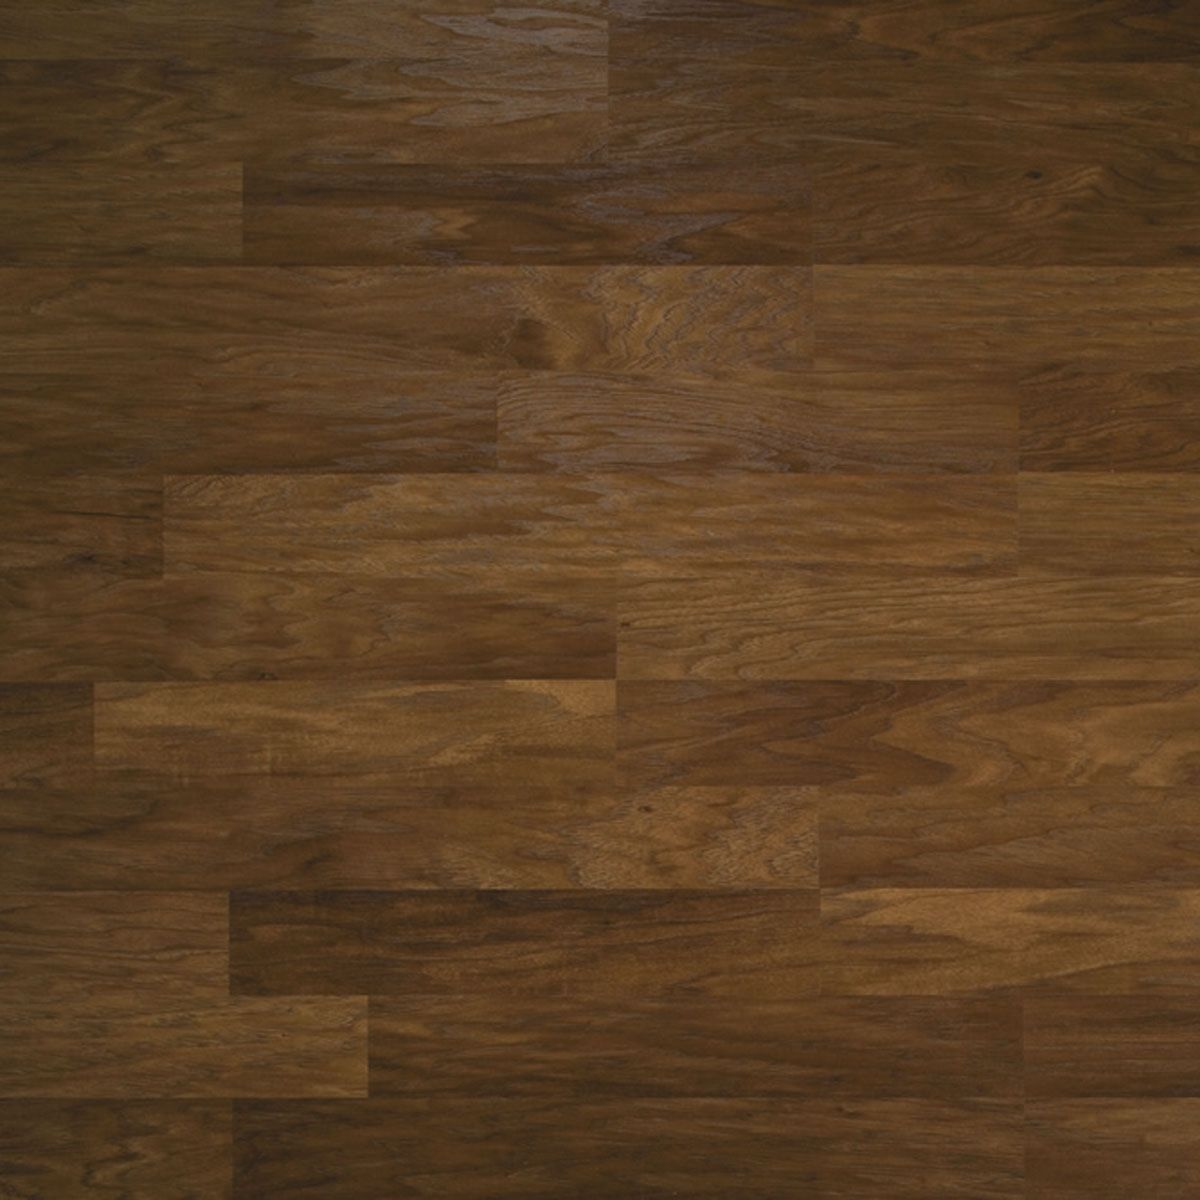 Oak wood floor texture awesome ideas 11026 floors map for Hardwood laminate